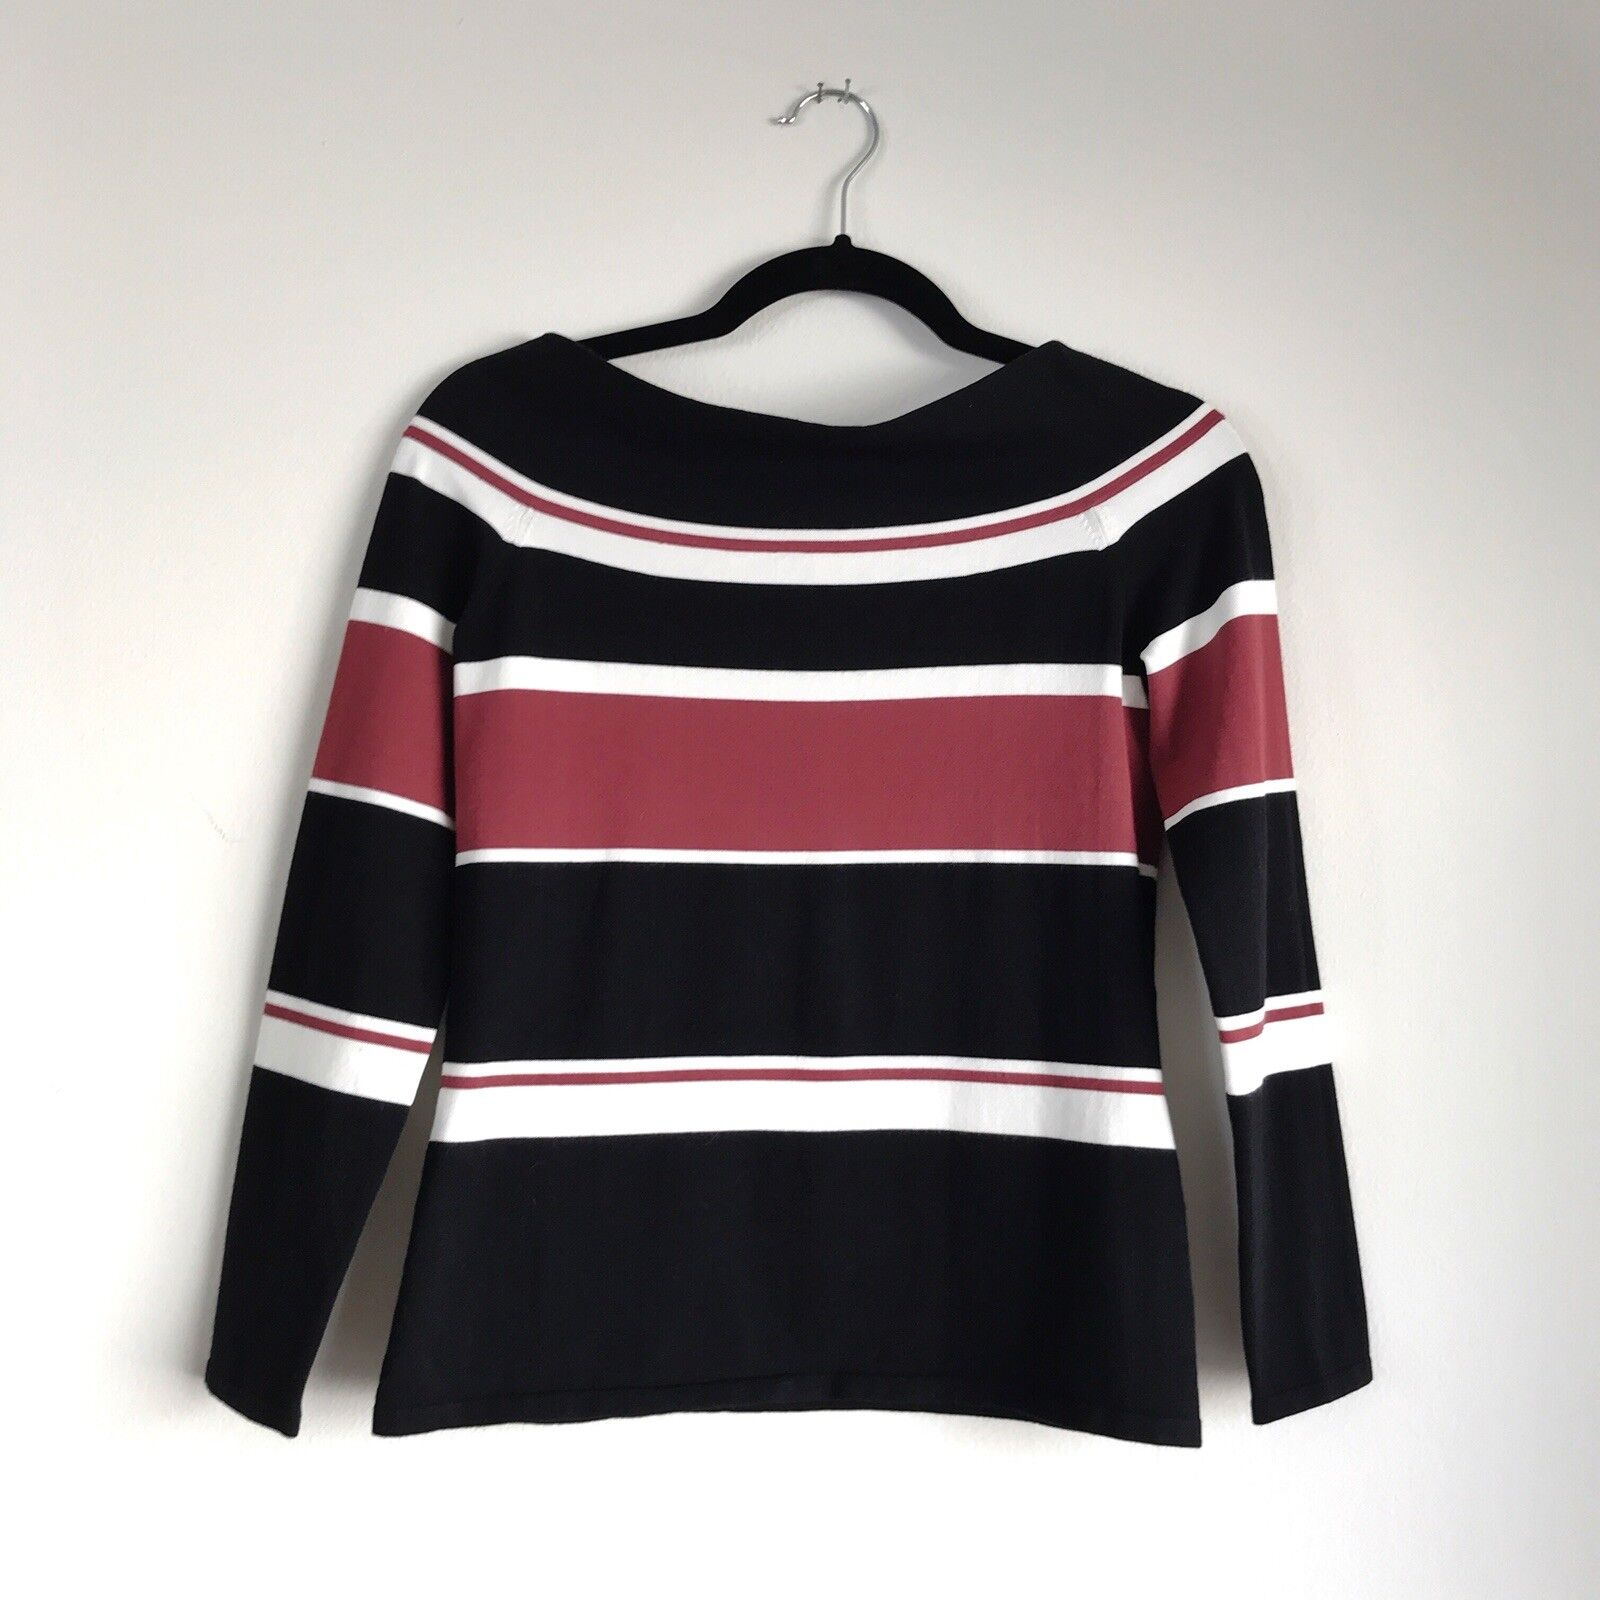 Veronica Beard Off The Shoulder Top Audrey rot schwarz & Weiß Striped Größe Medium